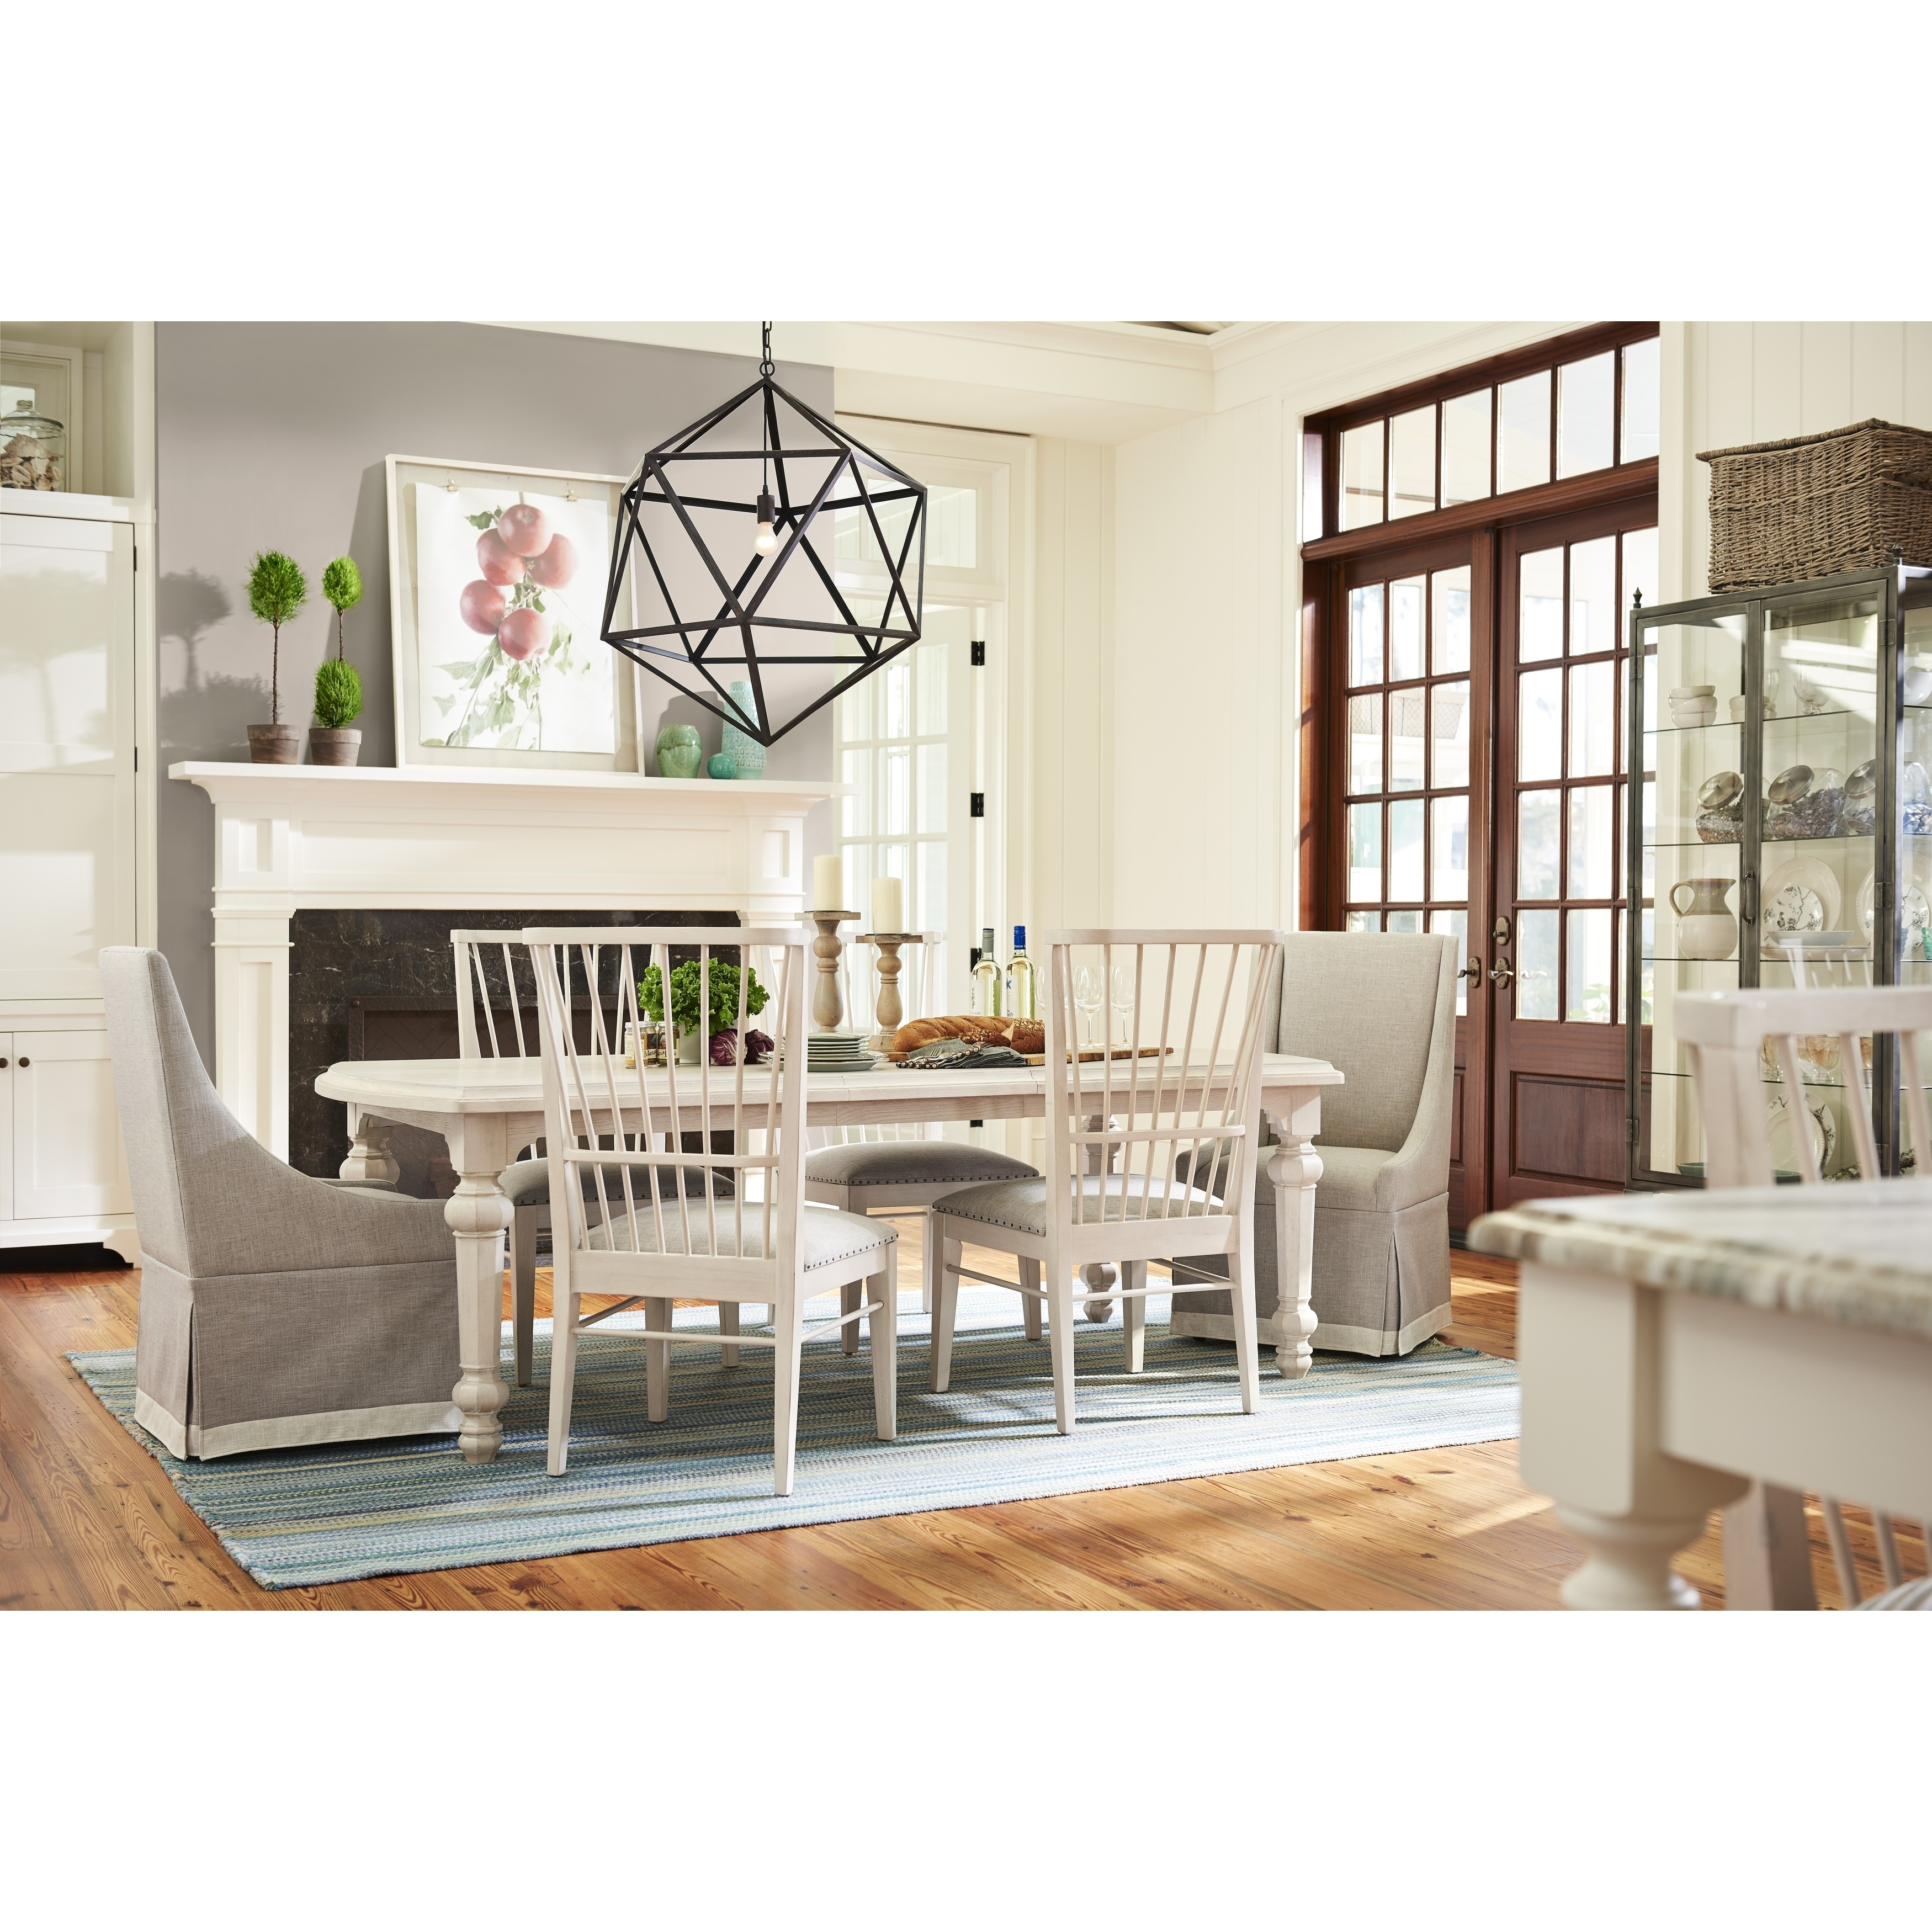 Paula Deen Bungalow Bluff Rectangular Sunday Supper Dining Table   Free  Shipping Today   Overstock   24794550